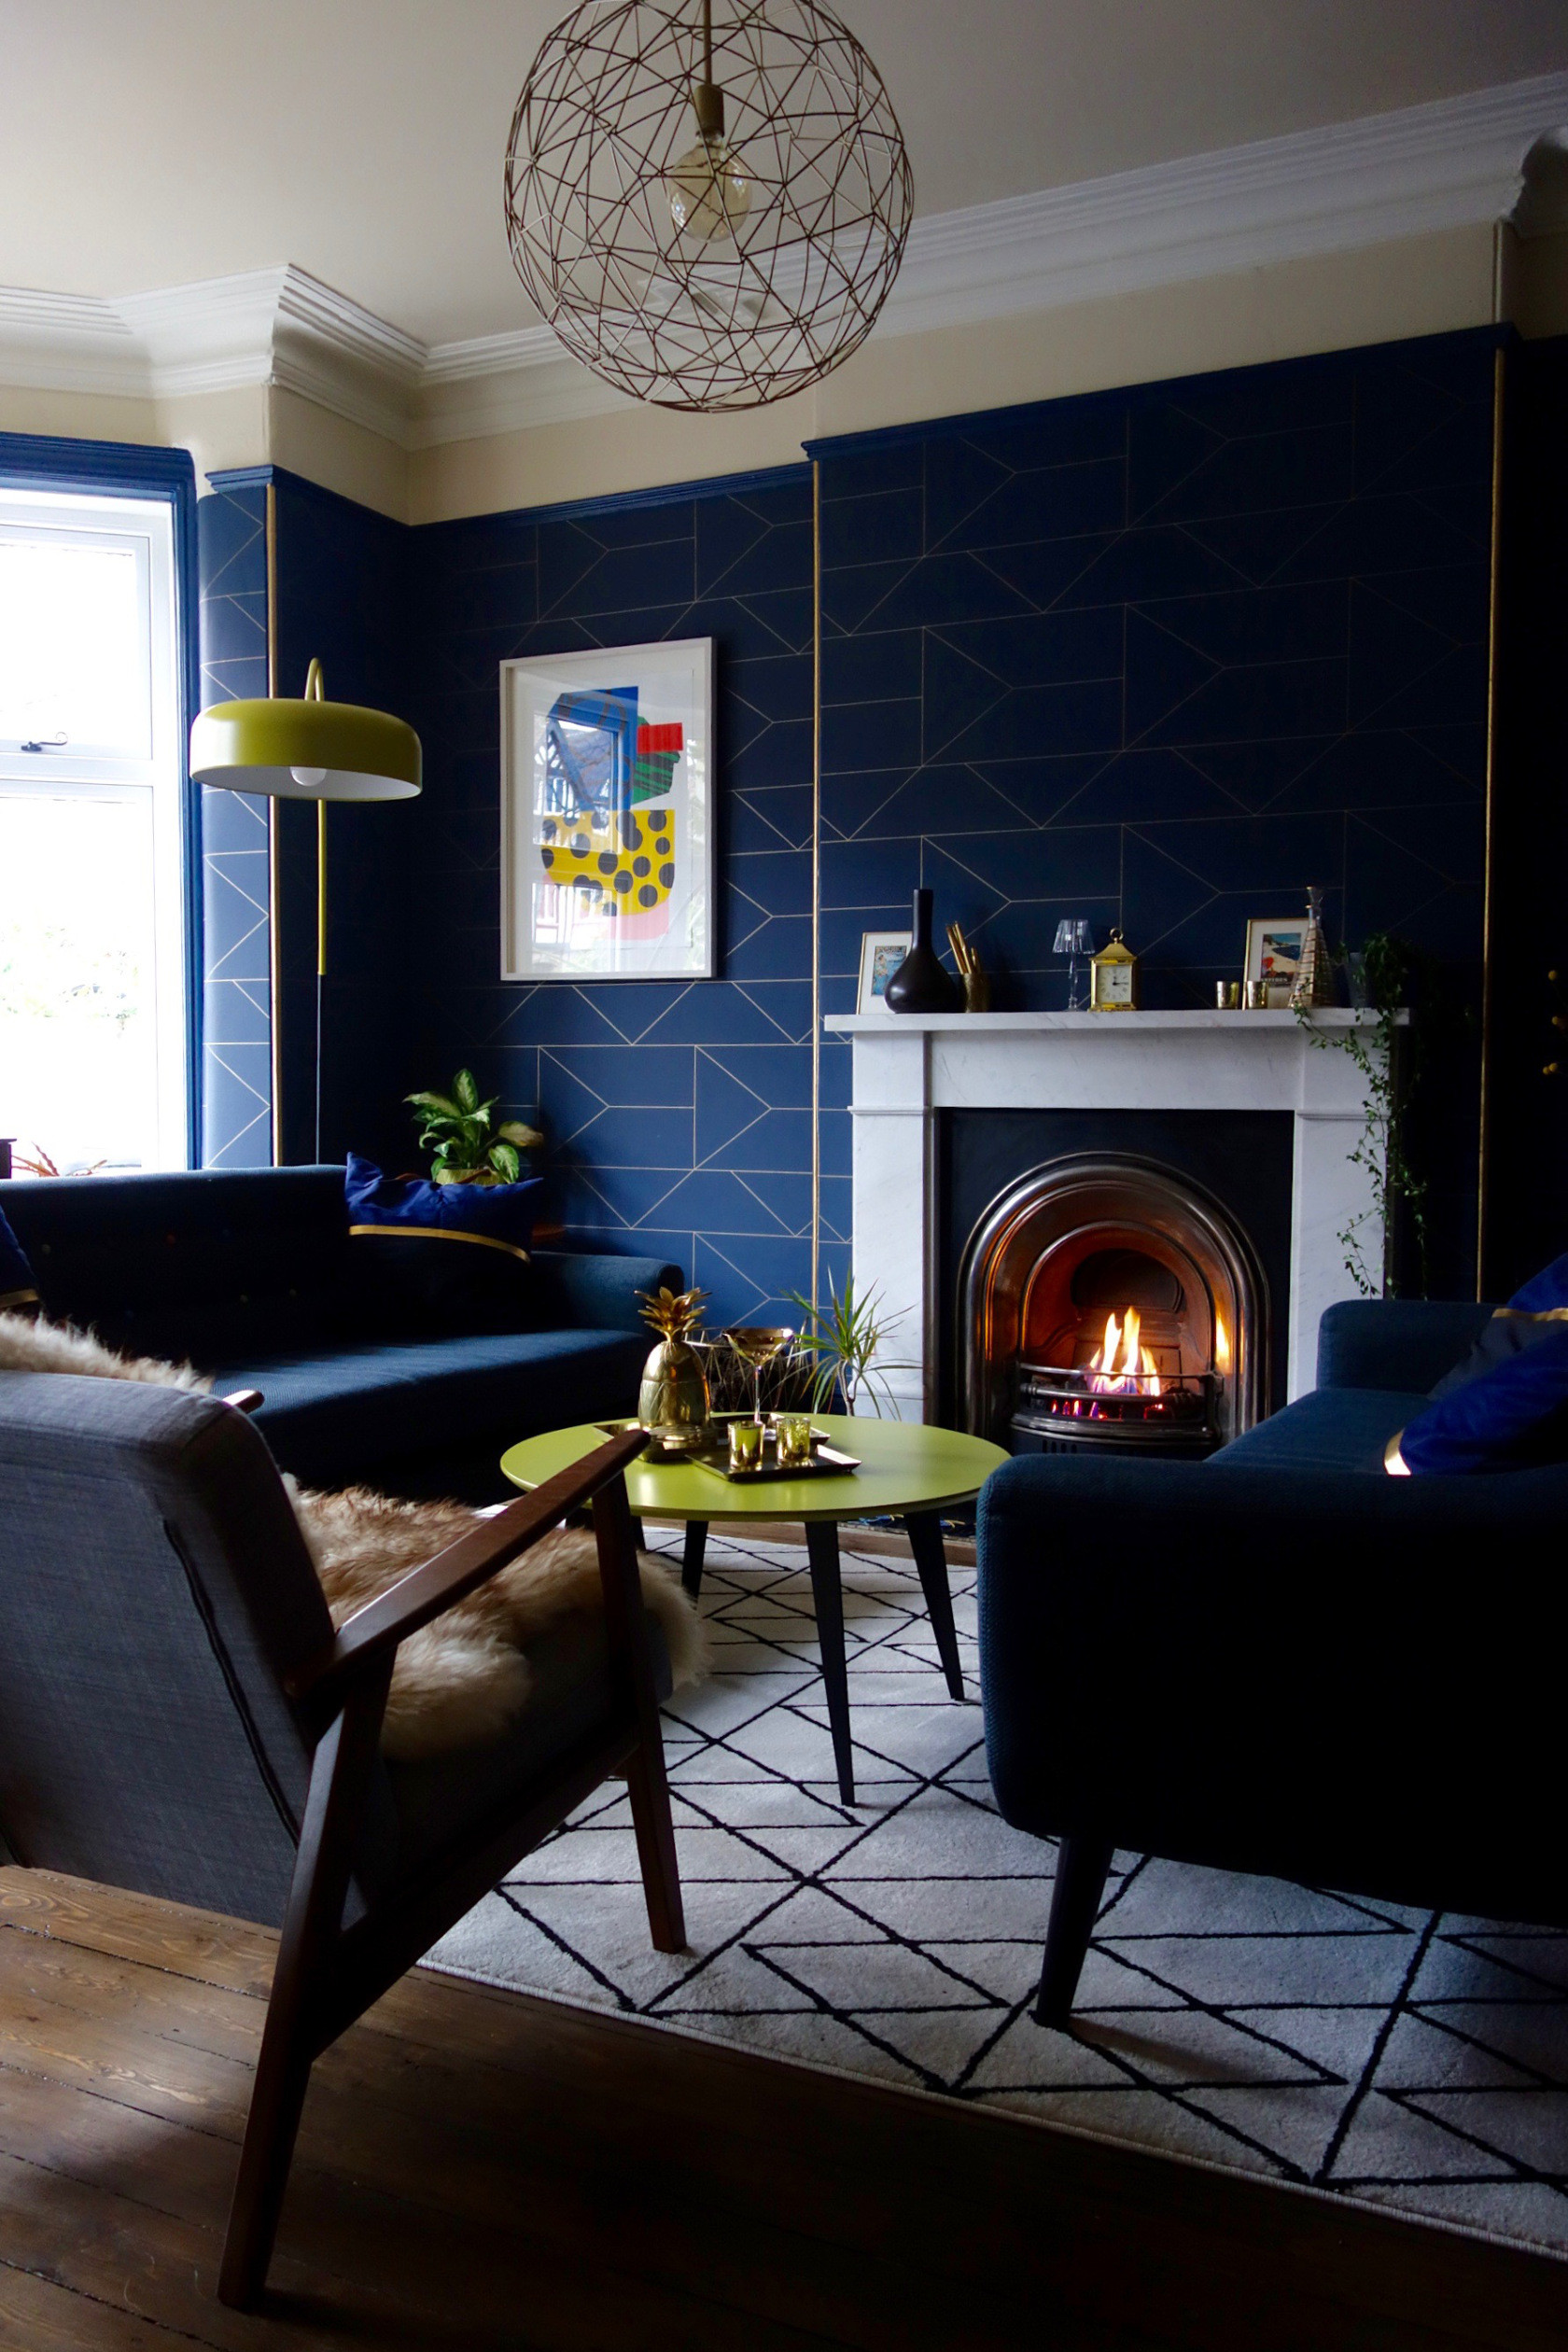 navy blue and gold wallpaper set off this pendant light perfectly image by  Karen Knox